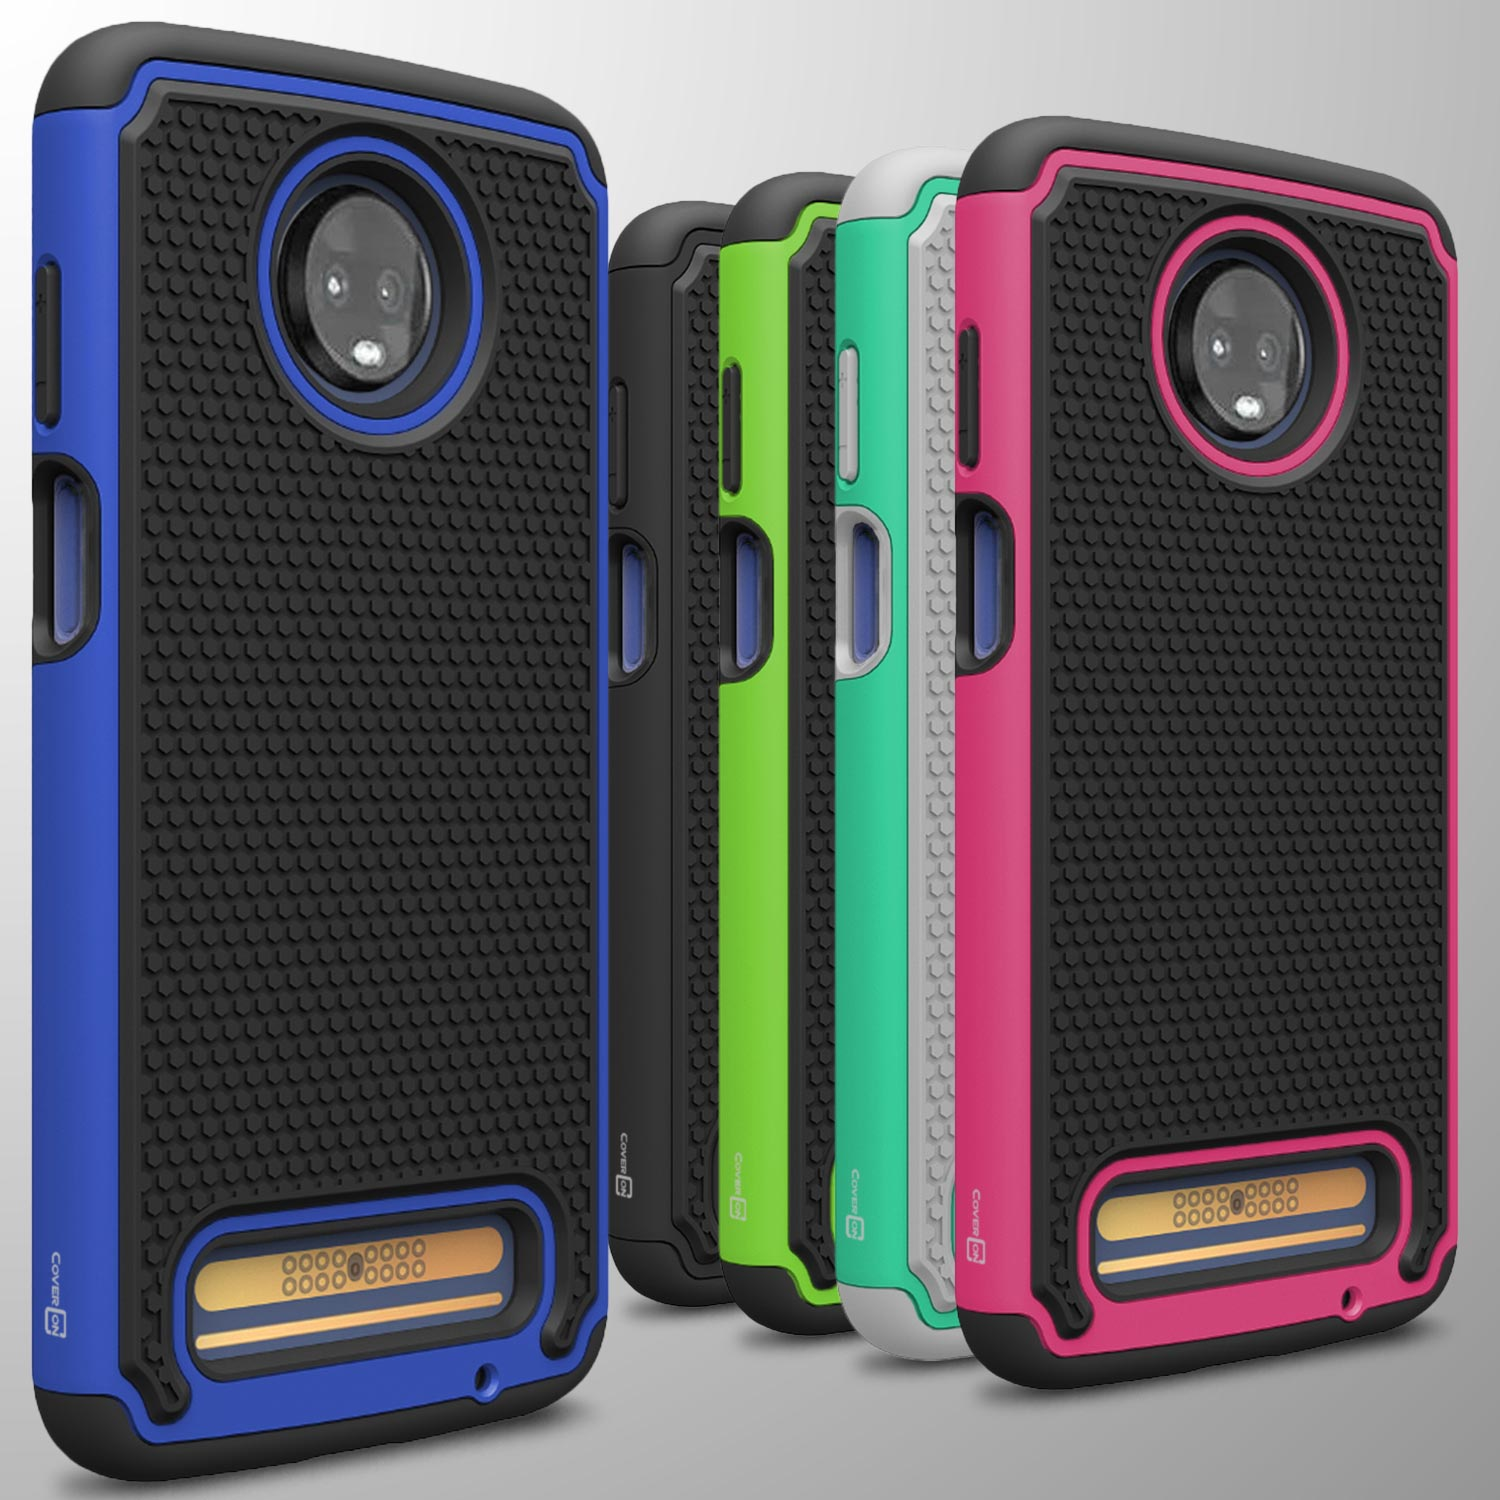 new product f1fa3 bf202 For Motorola Moto Z3 Play / Moto Z3 Case Tough Protective Hybrid ...